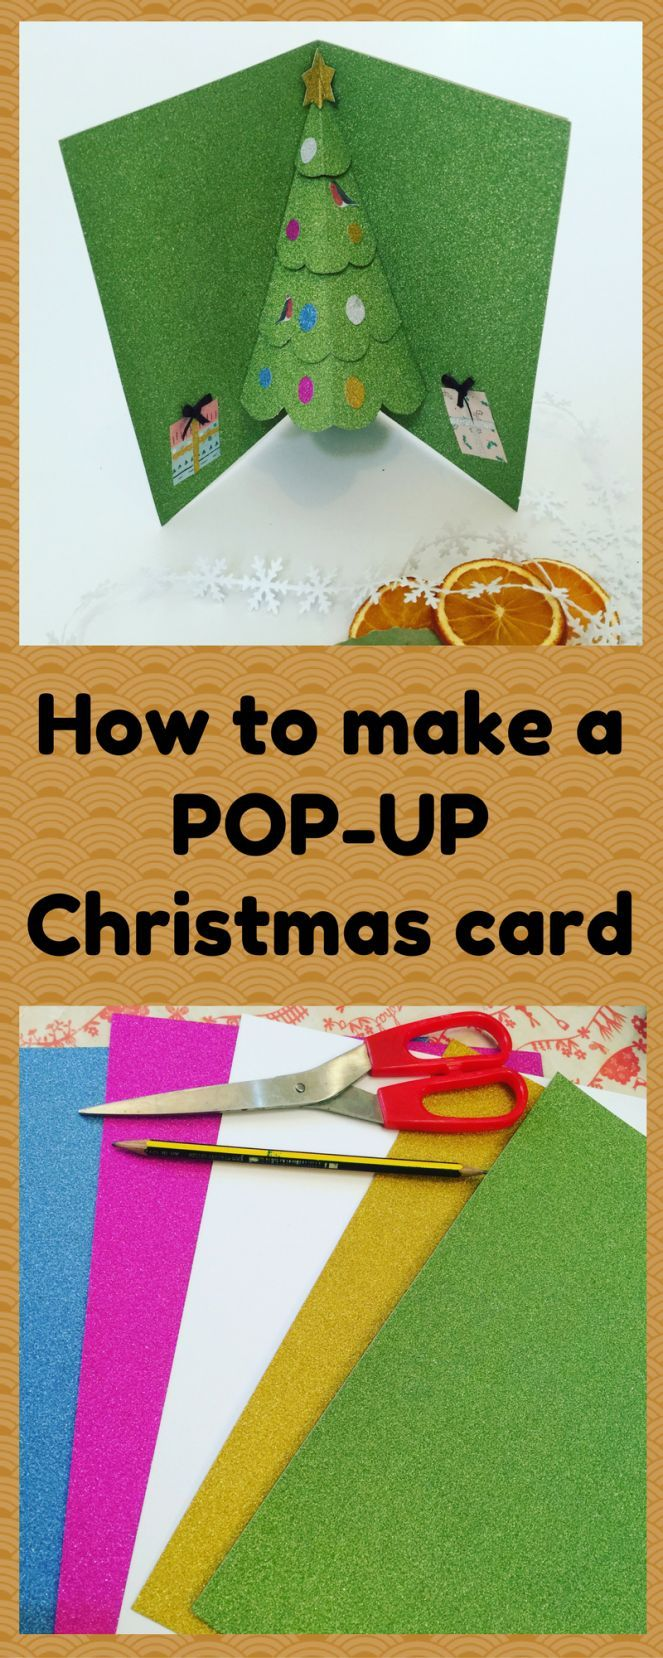 How to make a POP-UP Christmas Card | Paper crafting | Pinterest ...